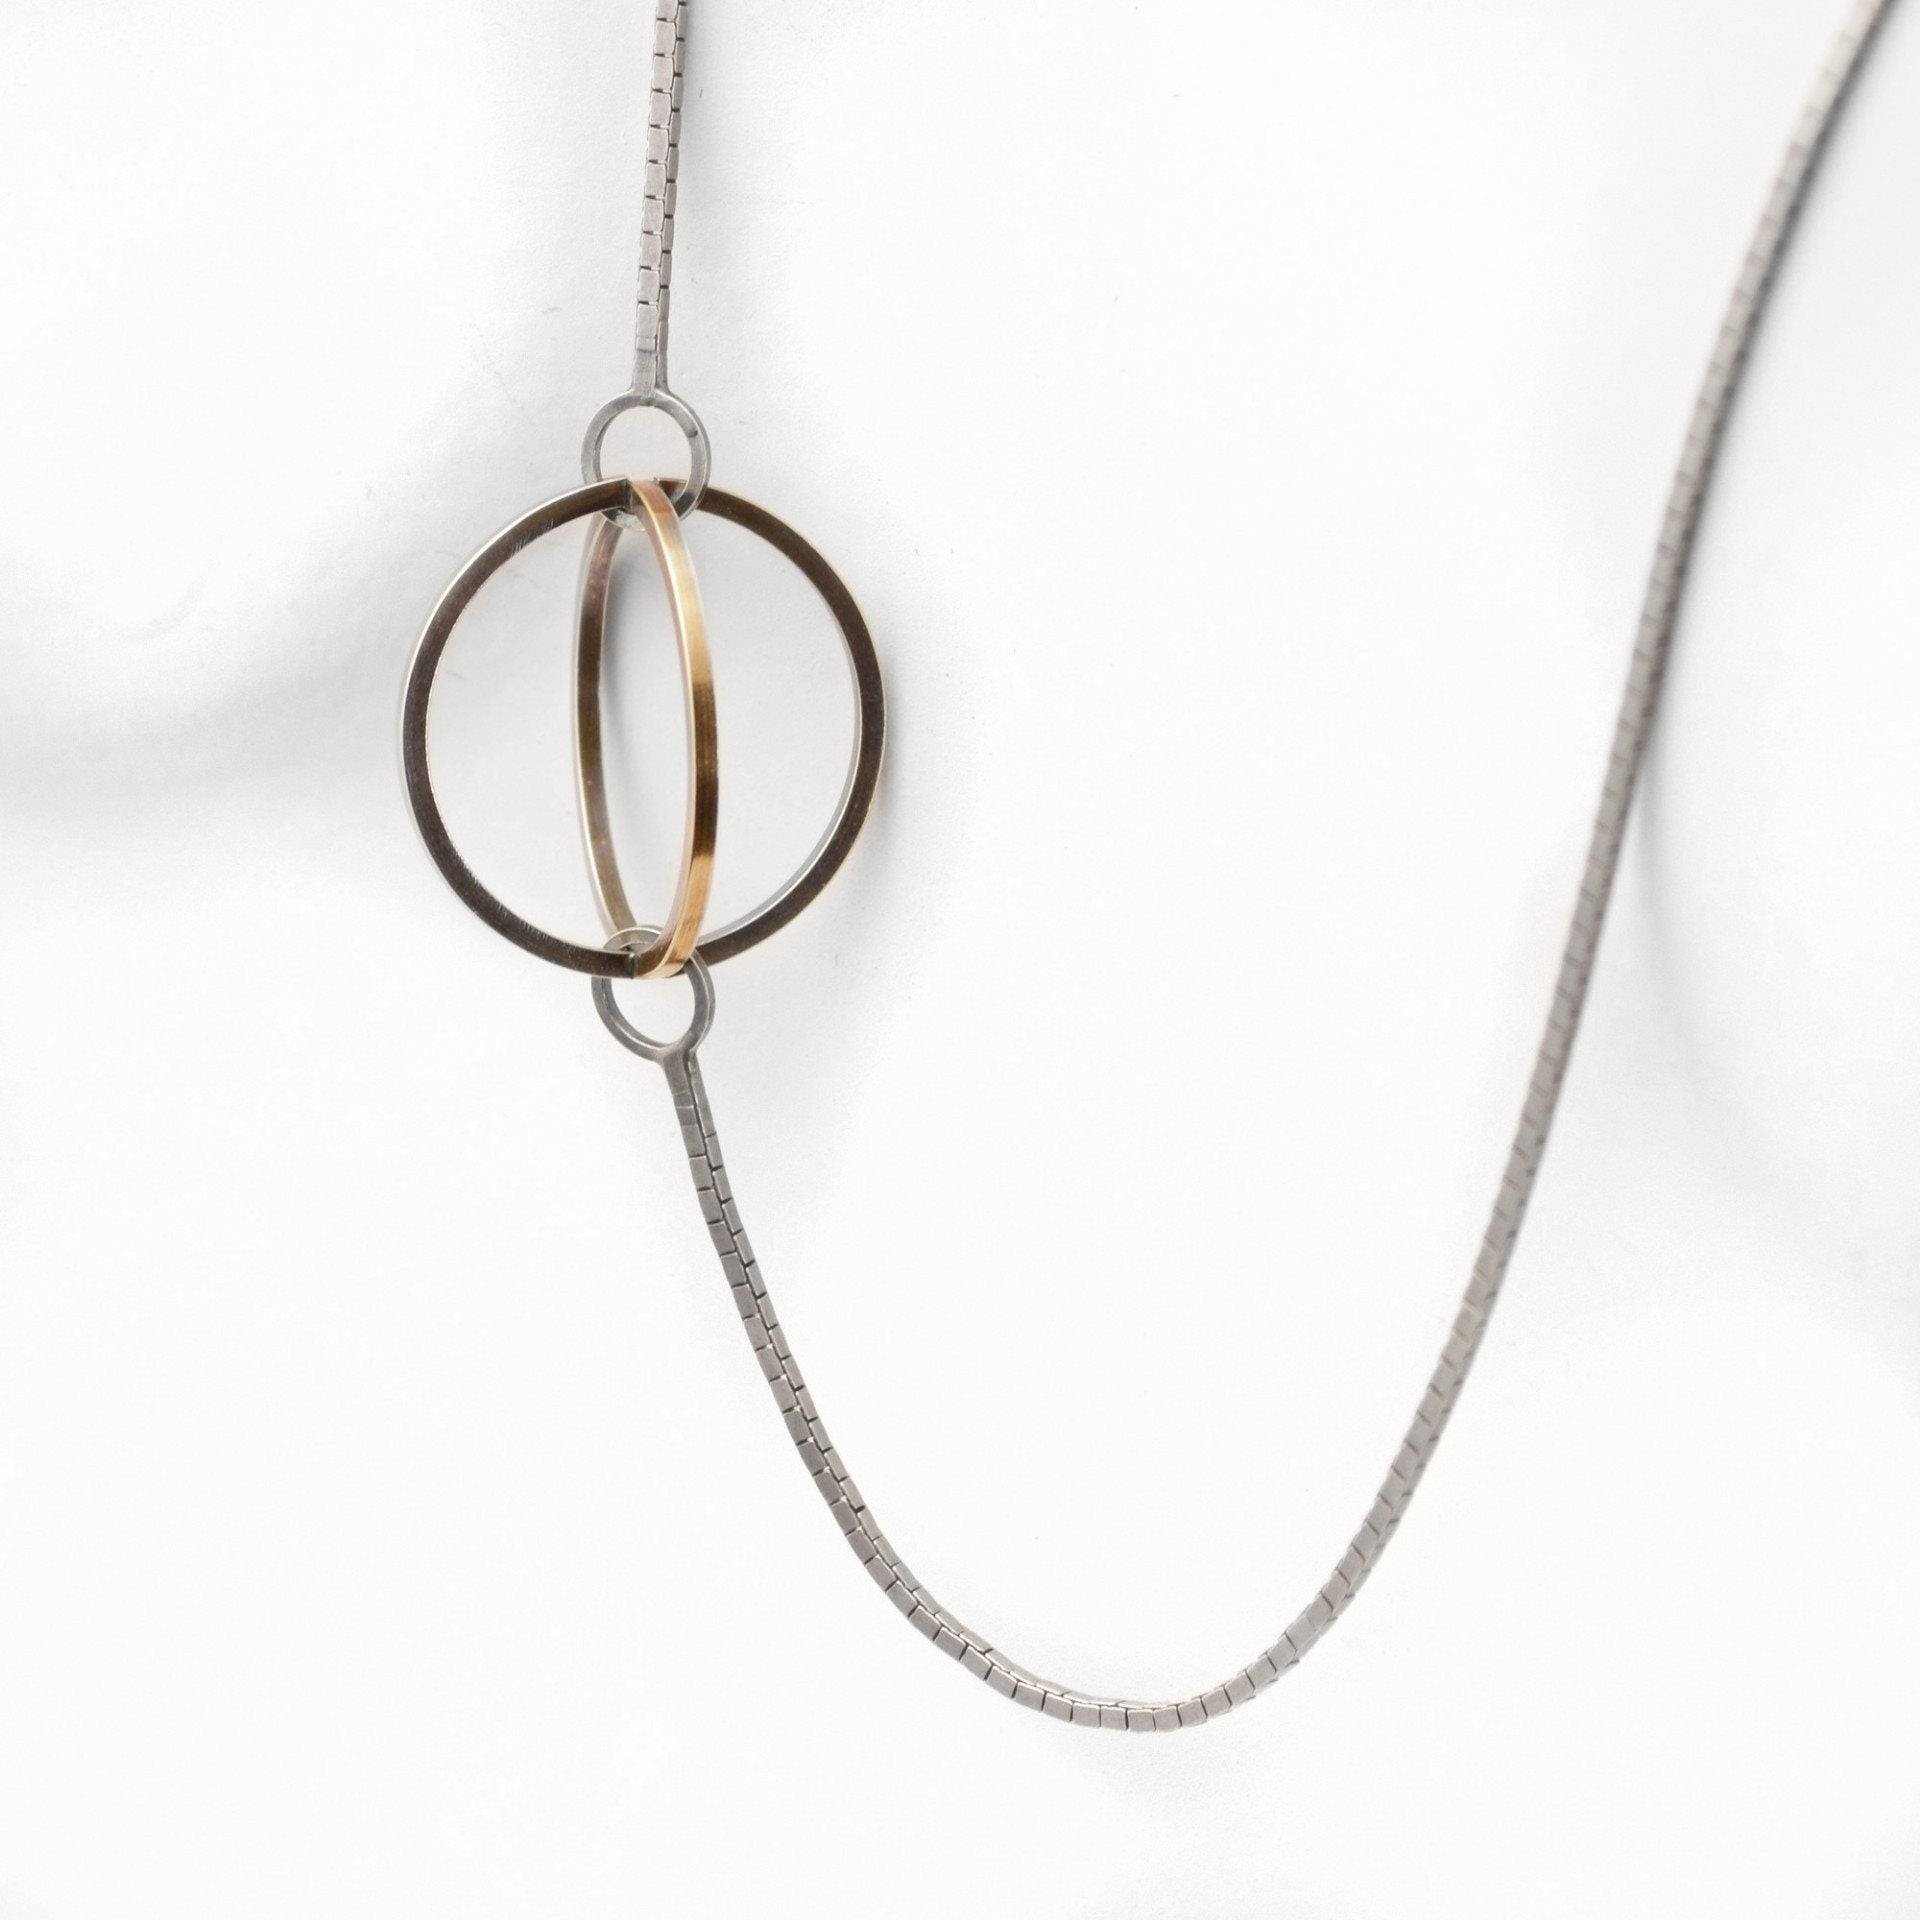 Blackened Sterling Silver and 22k Gold enhance the Geometric Shapes of this Lattis Long Necklace